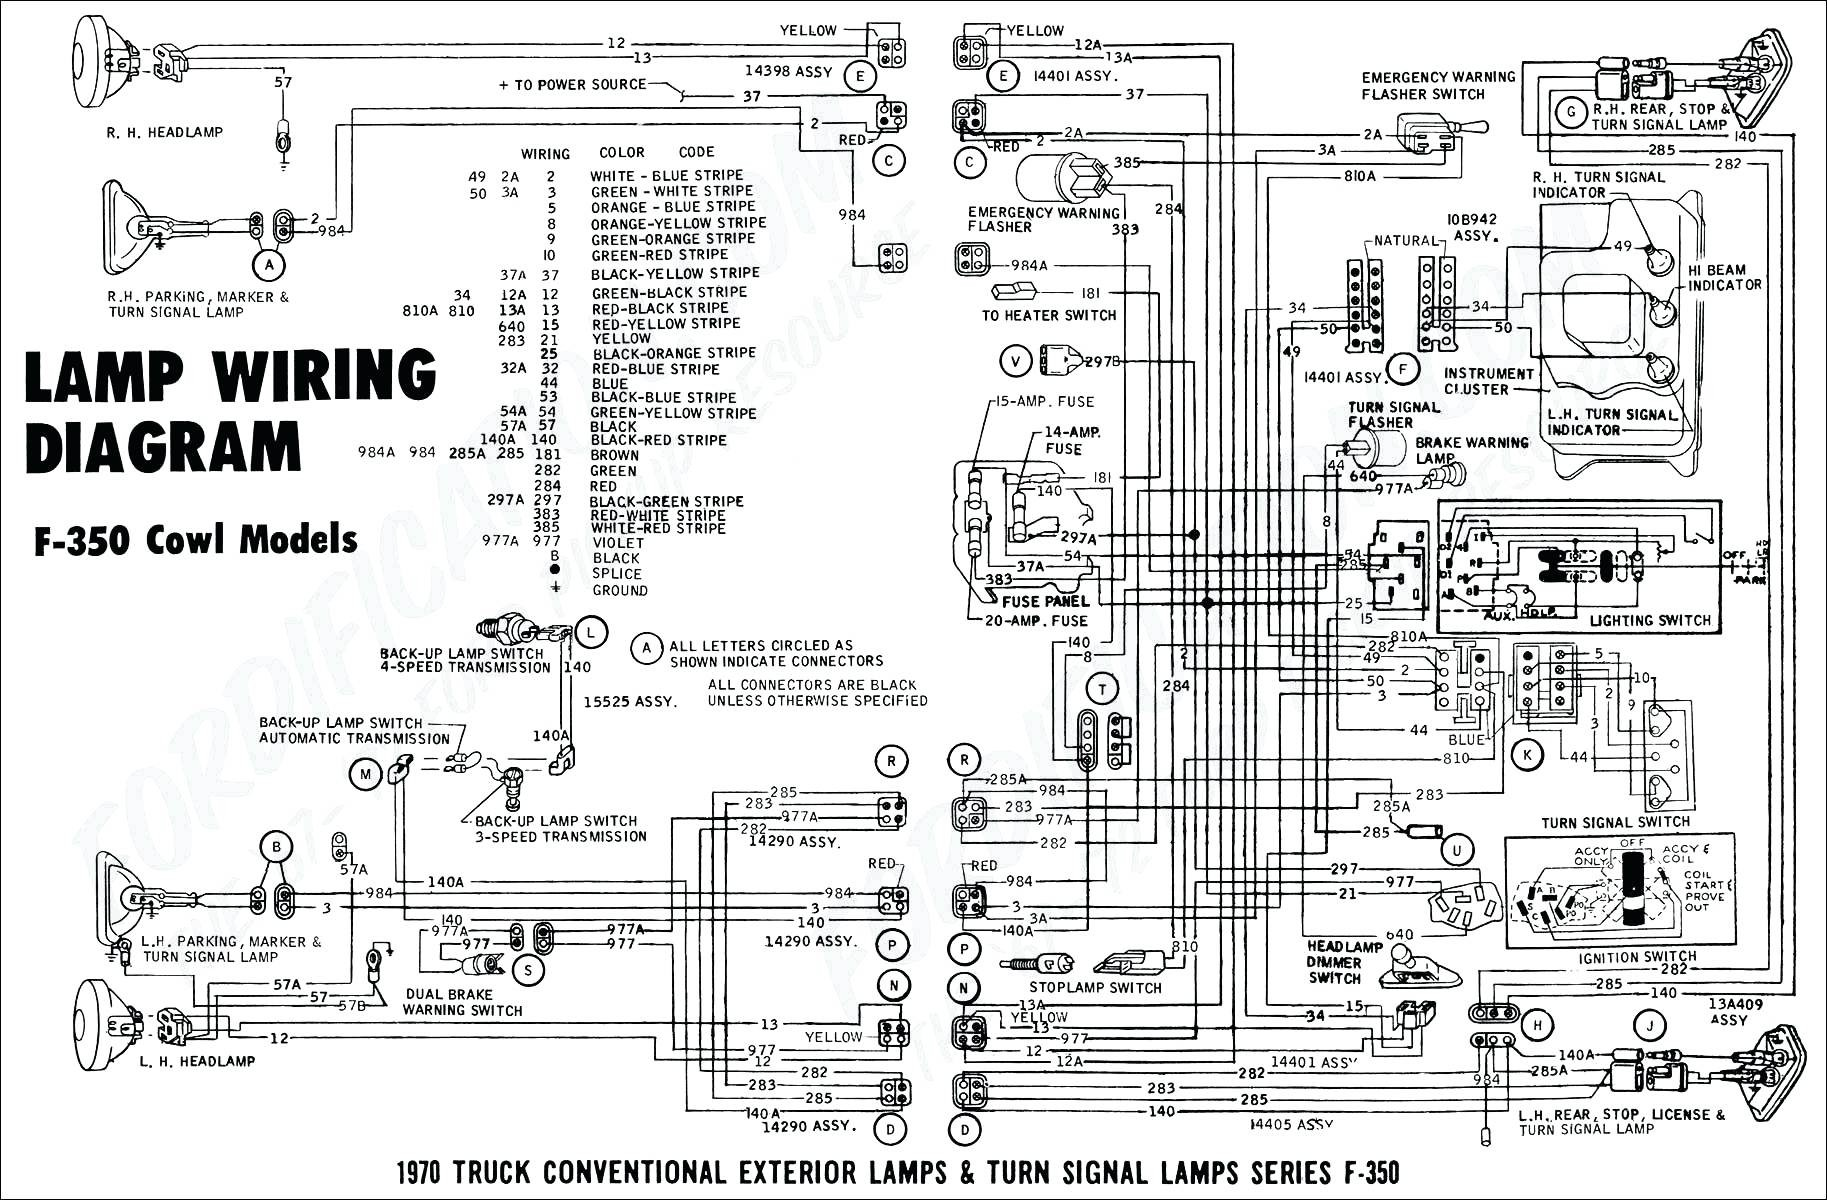 Ford Escort Wiring Diagrams. Ford Escort Wiring Diagrams. Ford. 1997 Ford Escort Stereo Wiring Diagram At Justdesktopwallpapers.com